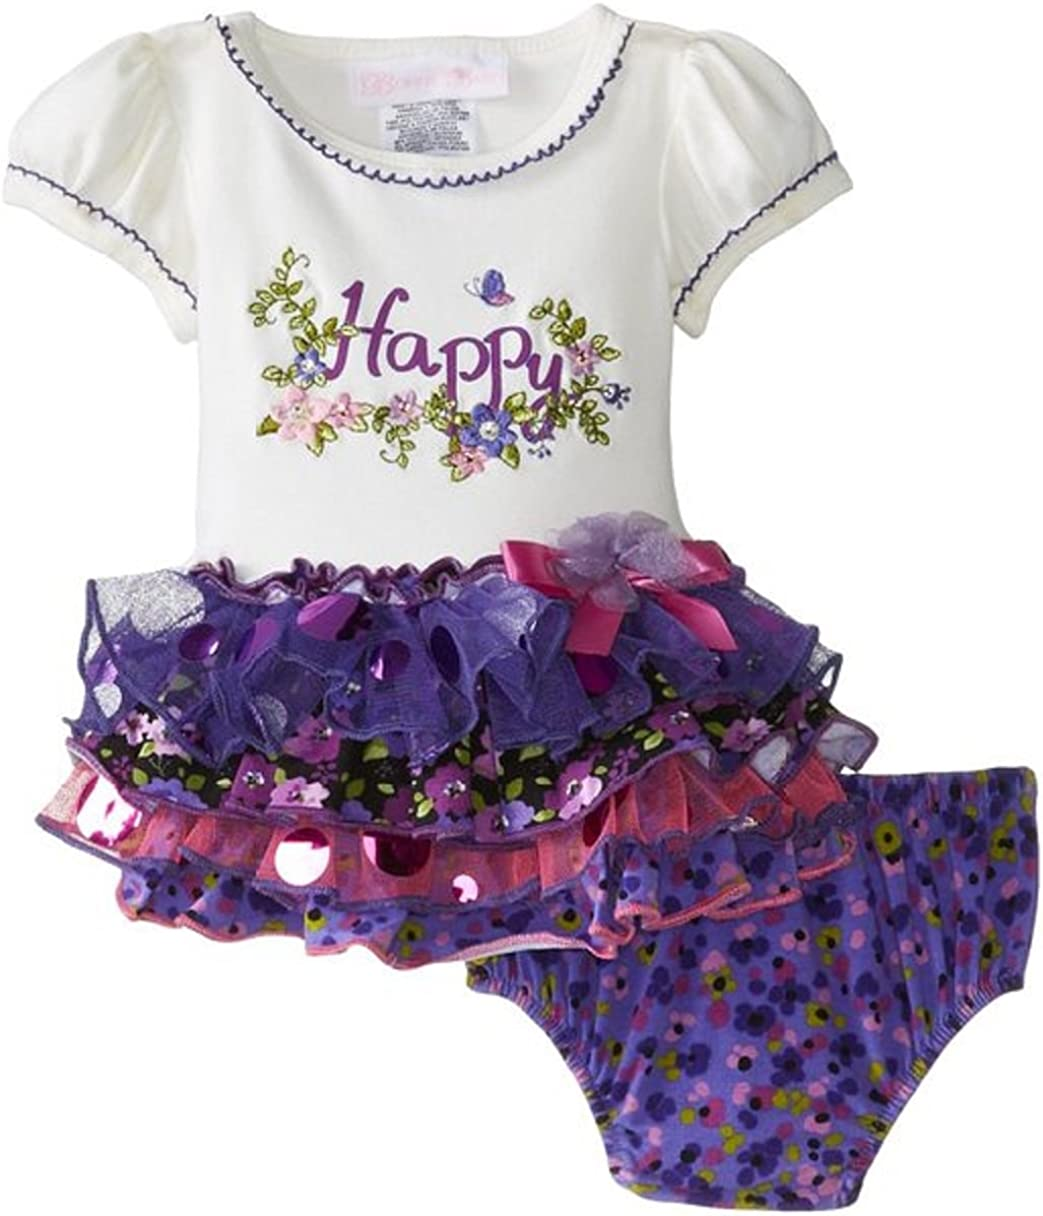 Bonnie Baby Girls' Sale Special Price Happy Appliqued Tier Dress Max 85% OFF